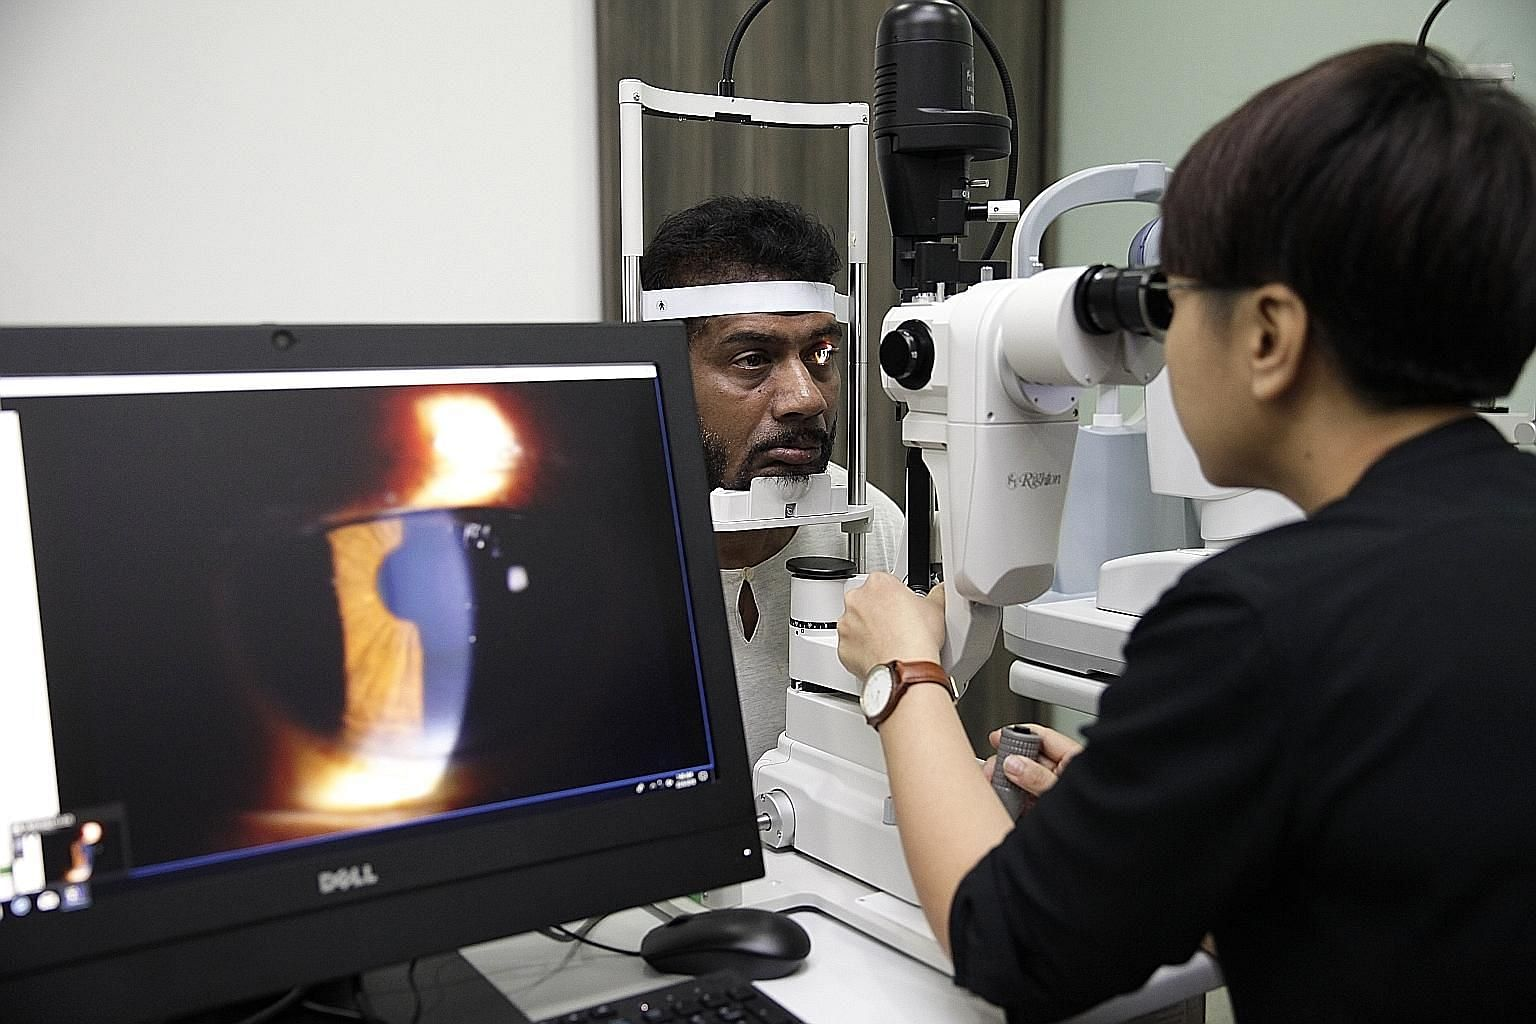 Optometrist Quek Zuoling giving Mr Chinnayah Ponnusamy a check-up at the eye clinic at Hougang Polyclinic, one of six primary-care facilities chosen for an initiative to step up eye care in the community.